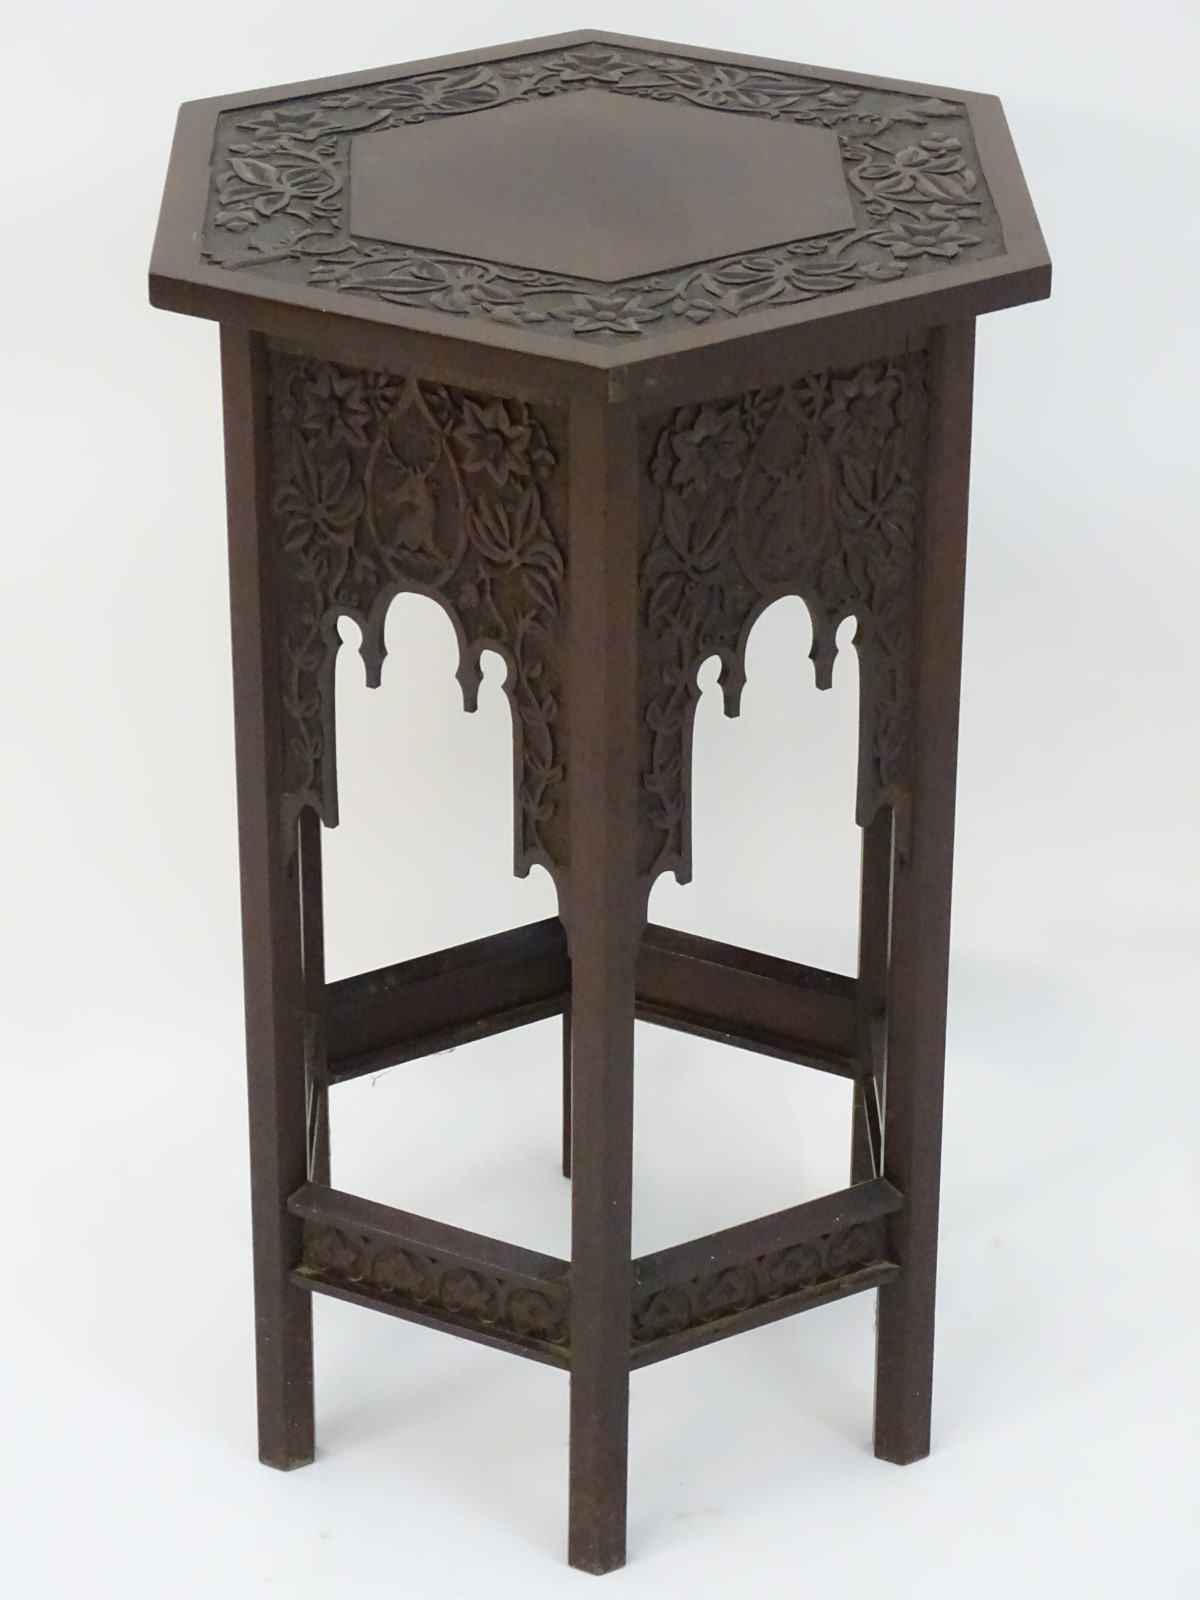 Lot 822 - A walnut Liberty style table with a hexagonal carved top above six matching carved facades with